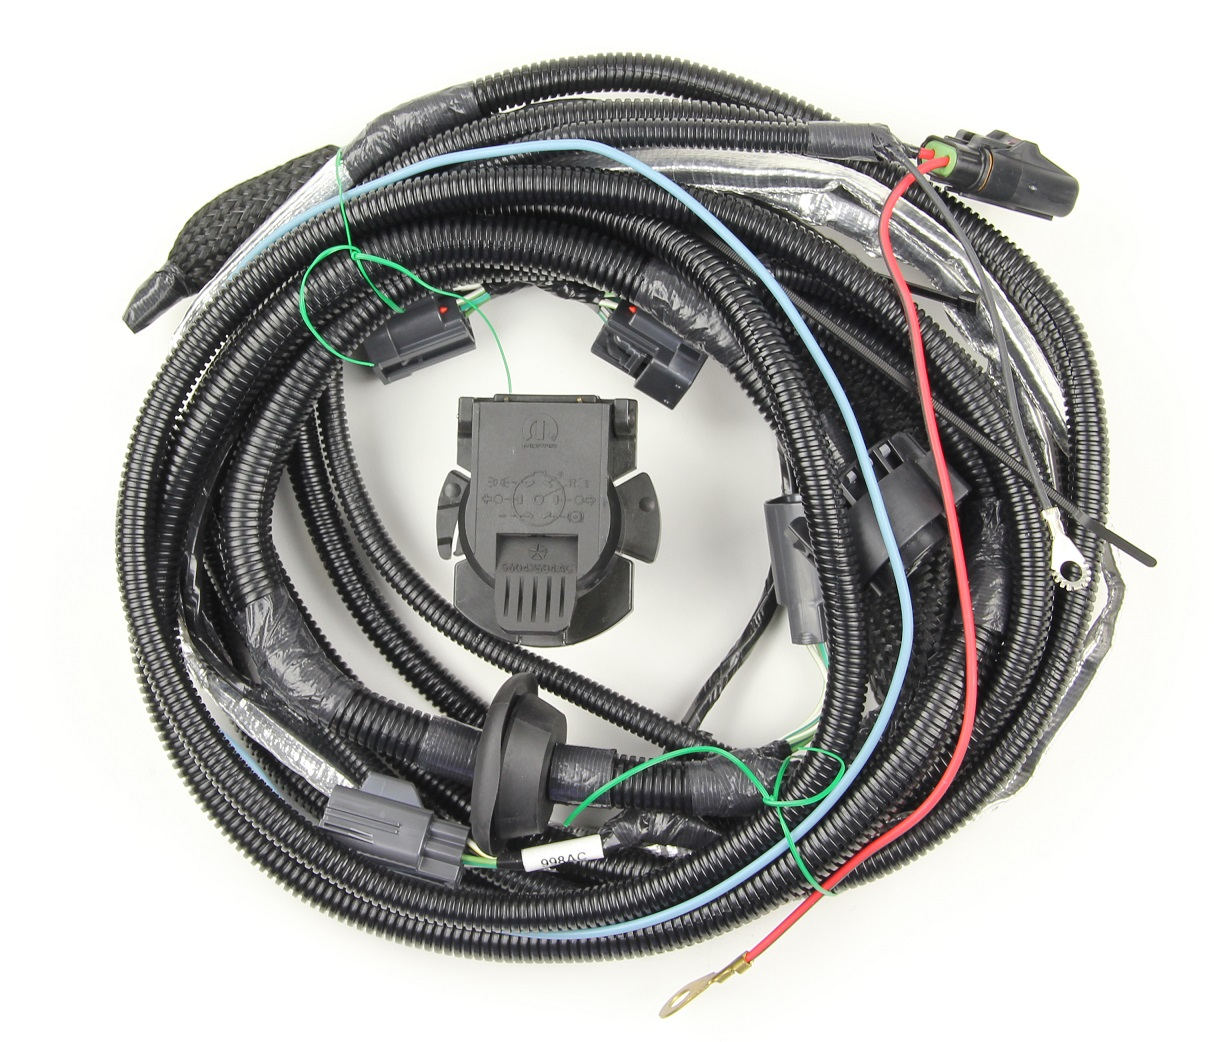 Mopar Trailer Tow Wiring Harness for 2008-2012 Liberty KK #82210642ADJustForJeeps.com